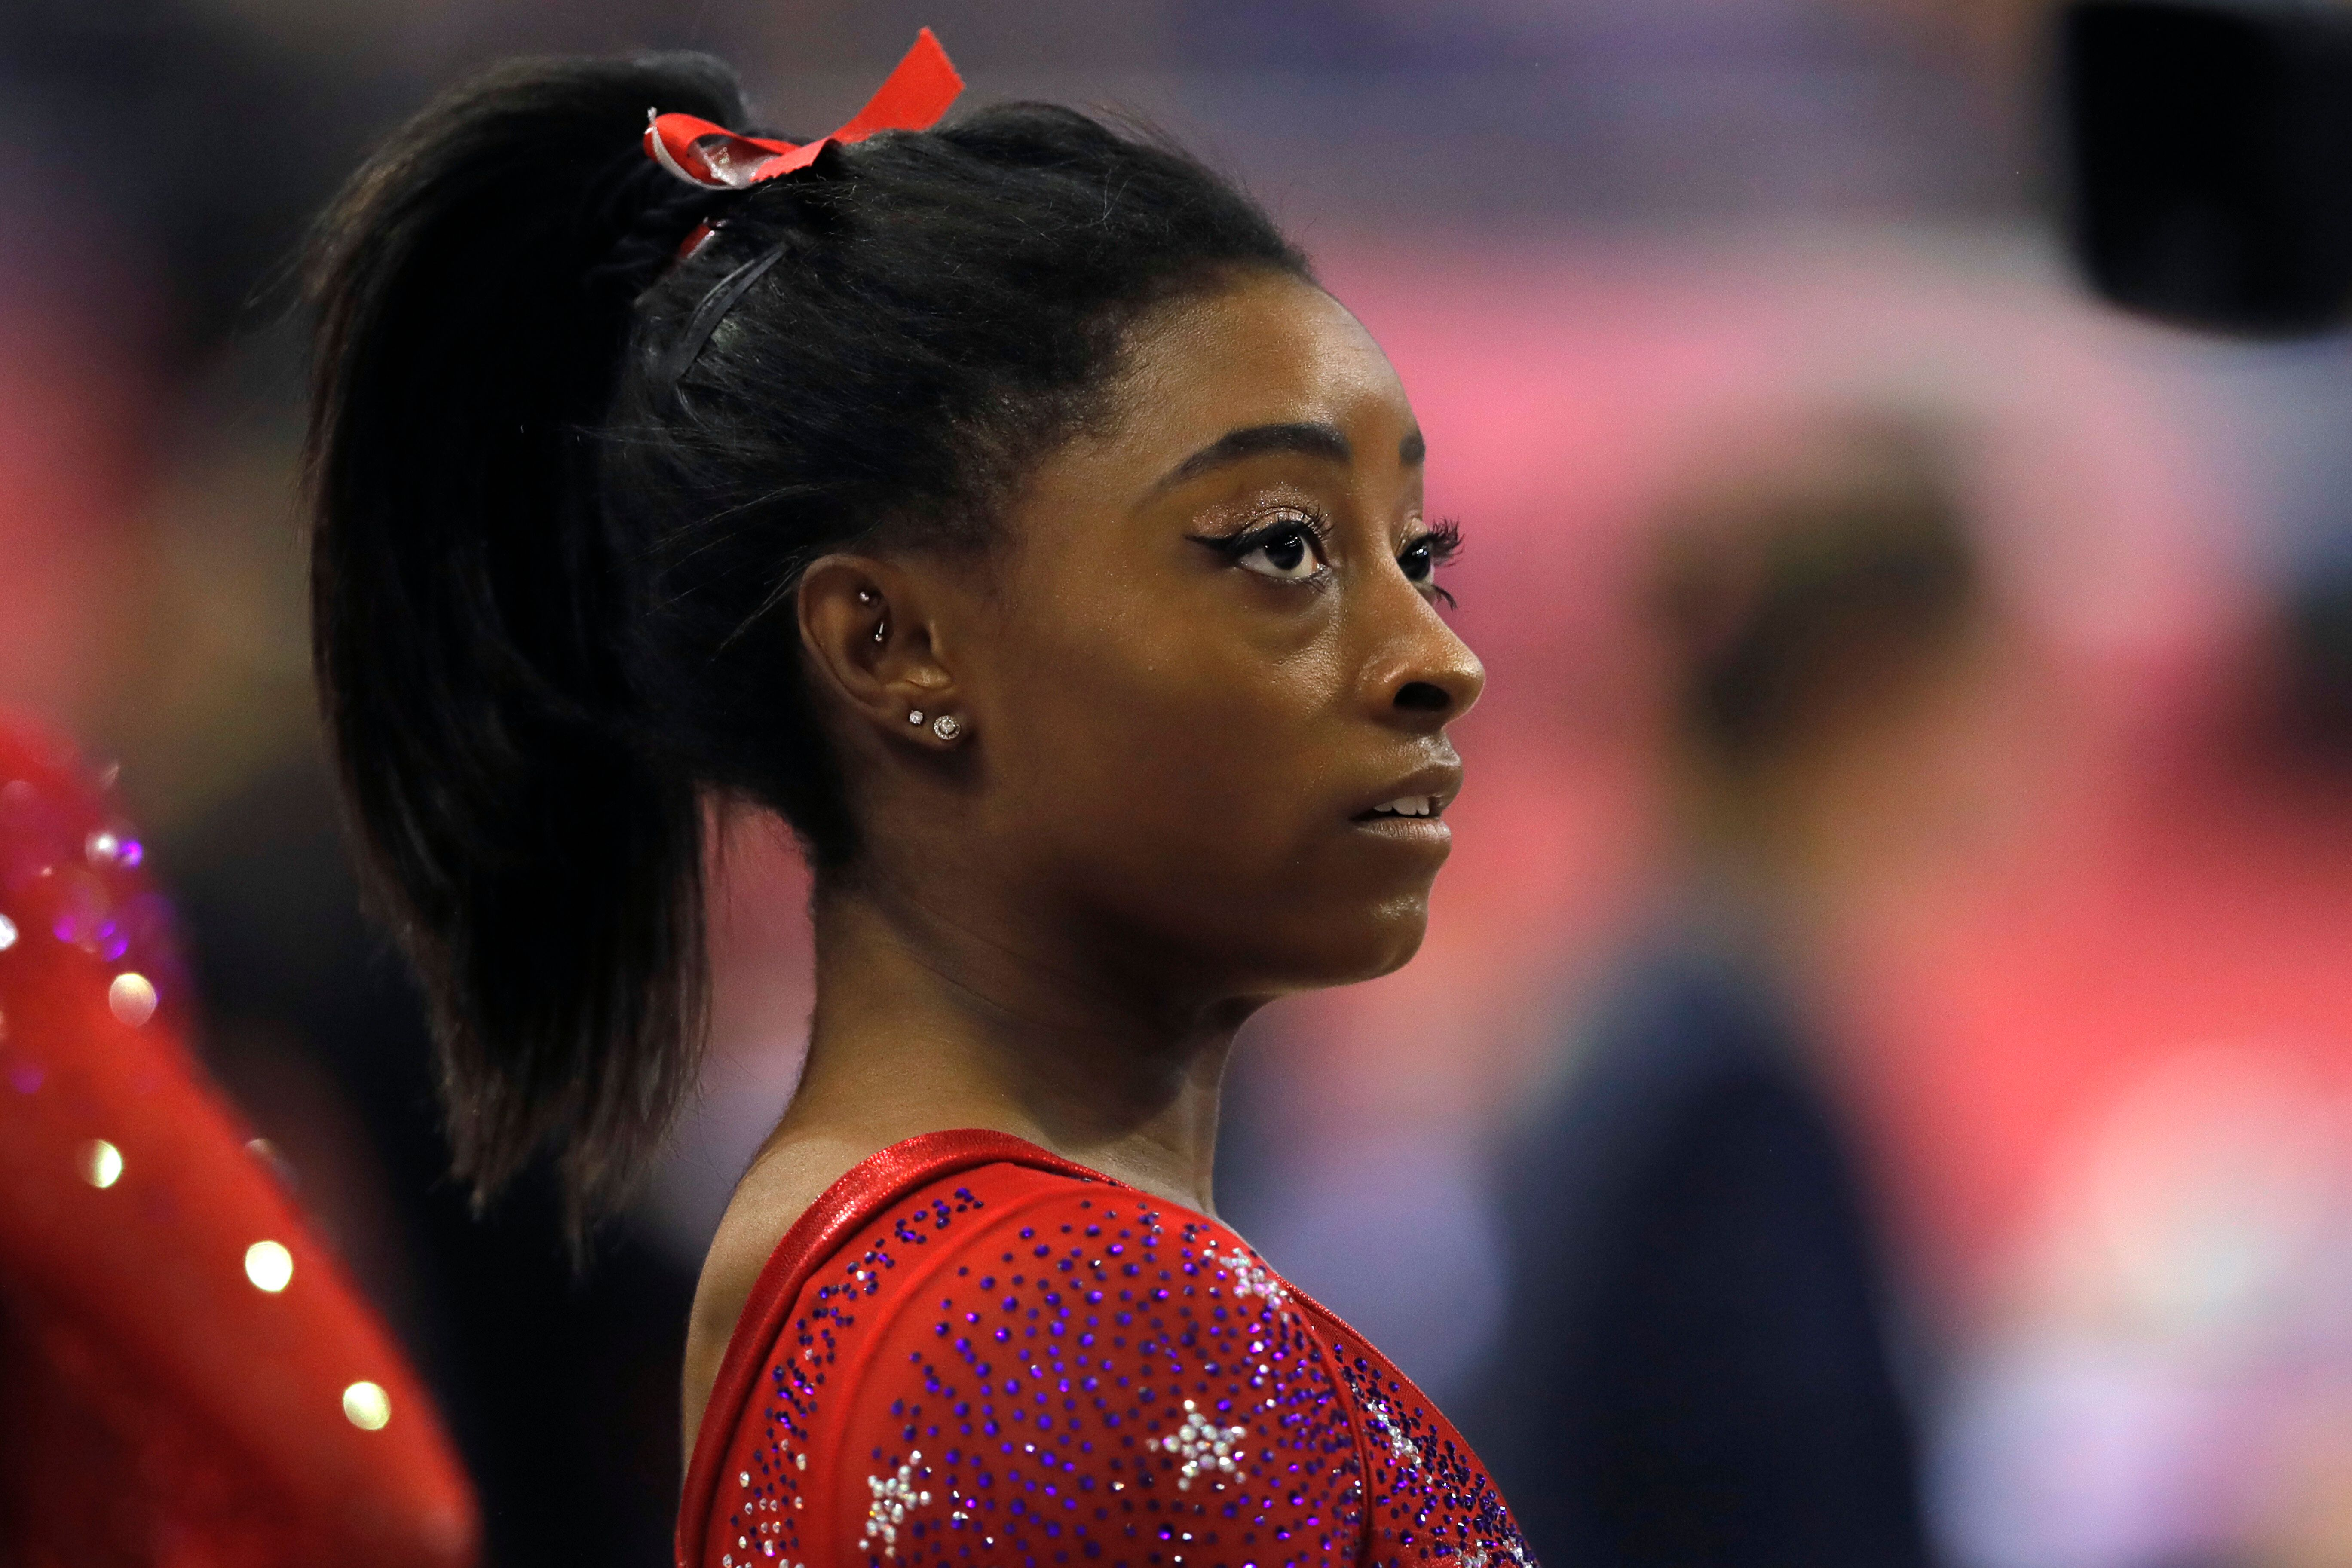 Simone Biles of the U.S. watches other athletes during the women's team final of the Gymnastics World Chamionships at the Aspire Dome in Doha, Qatar, Tuesday, Oct. 30, 2018. (AP Photo/Vadim Ghirda)